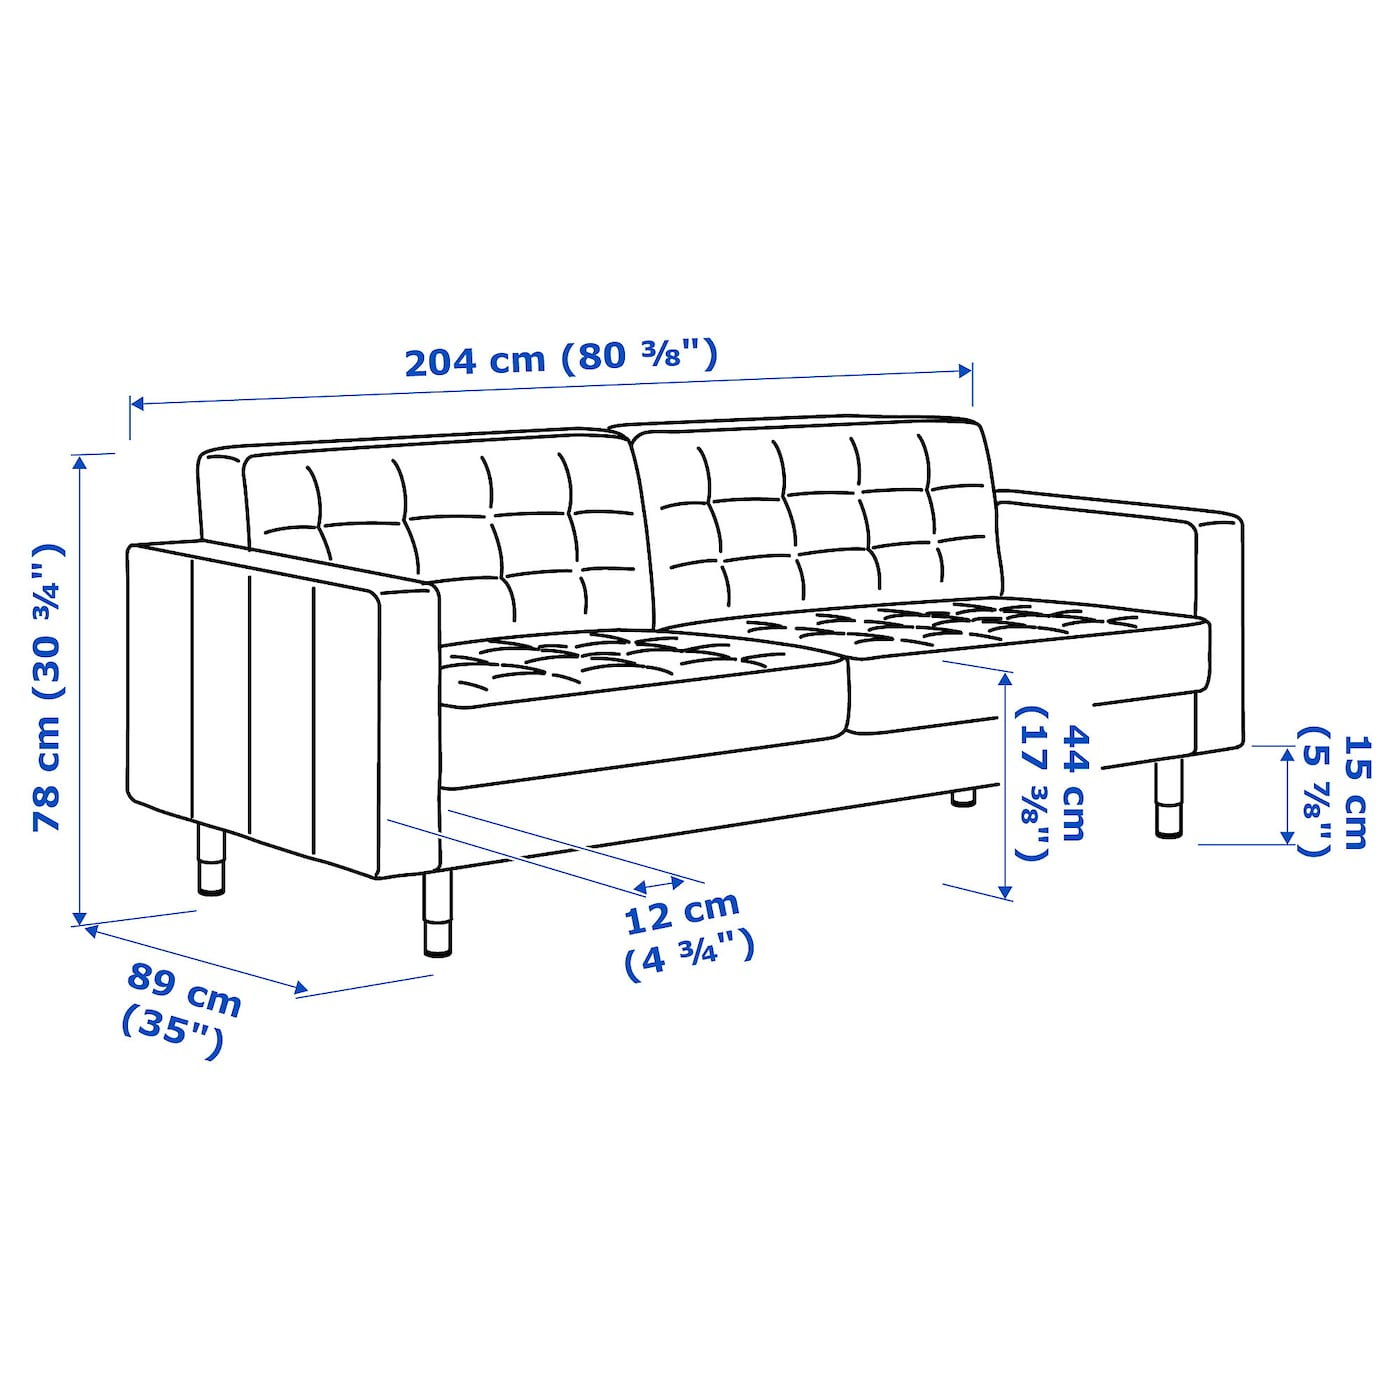 IKEA LANDSKRONA three-seat sofa Removable armrests make it easy to add on a chaise longue.